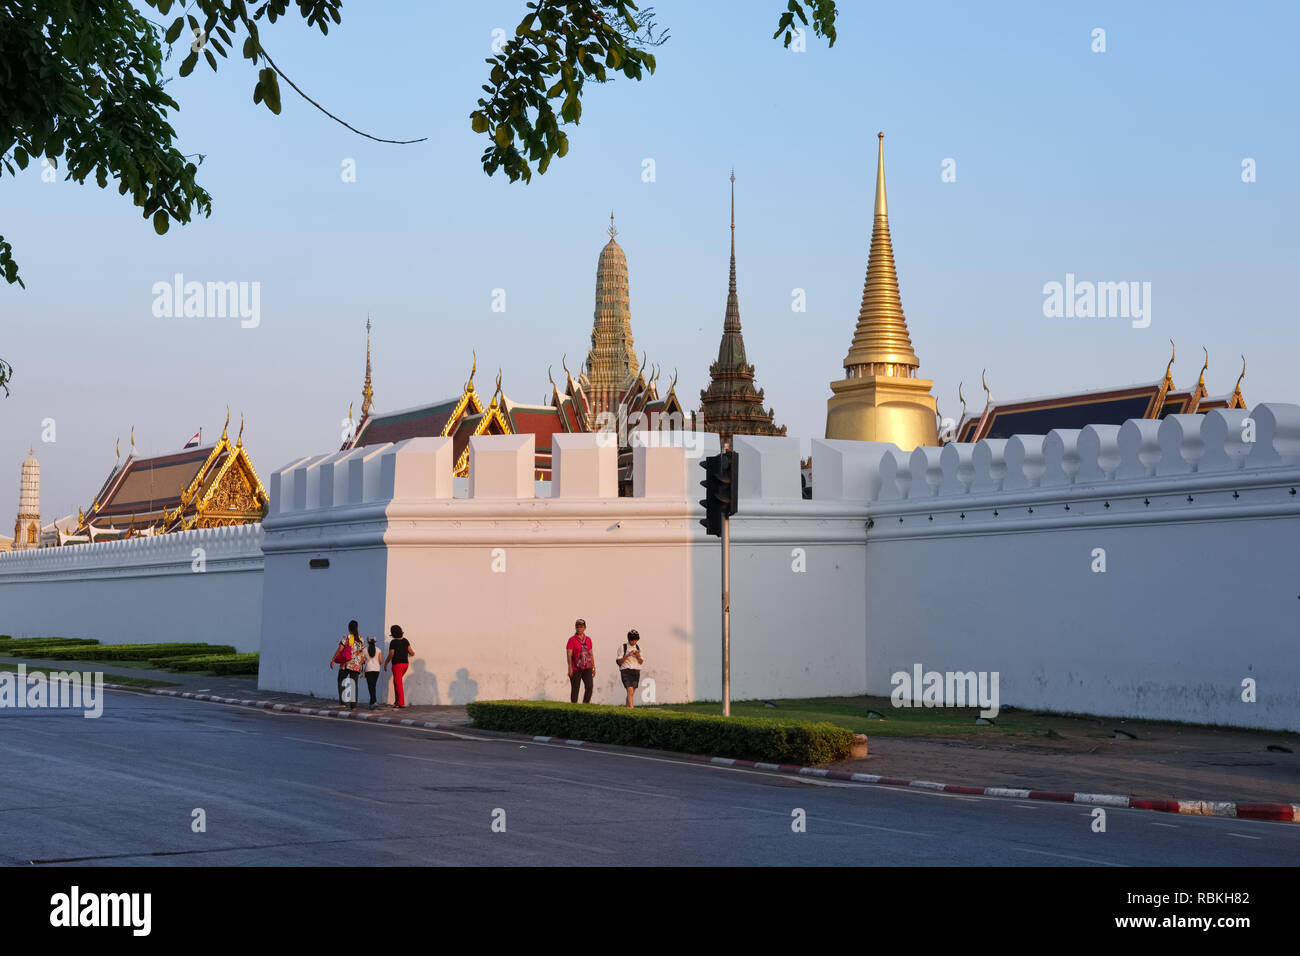 Wat Phra Kaew (Gaew) and Grand Palace in Bangkok, Thailand, home of the Jade Buddha and the country's most revered temple, seen from its northern wall - Stock Image